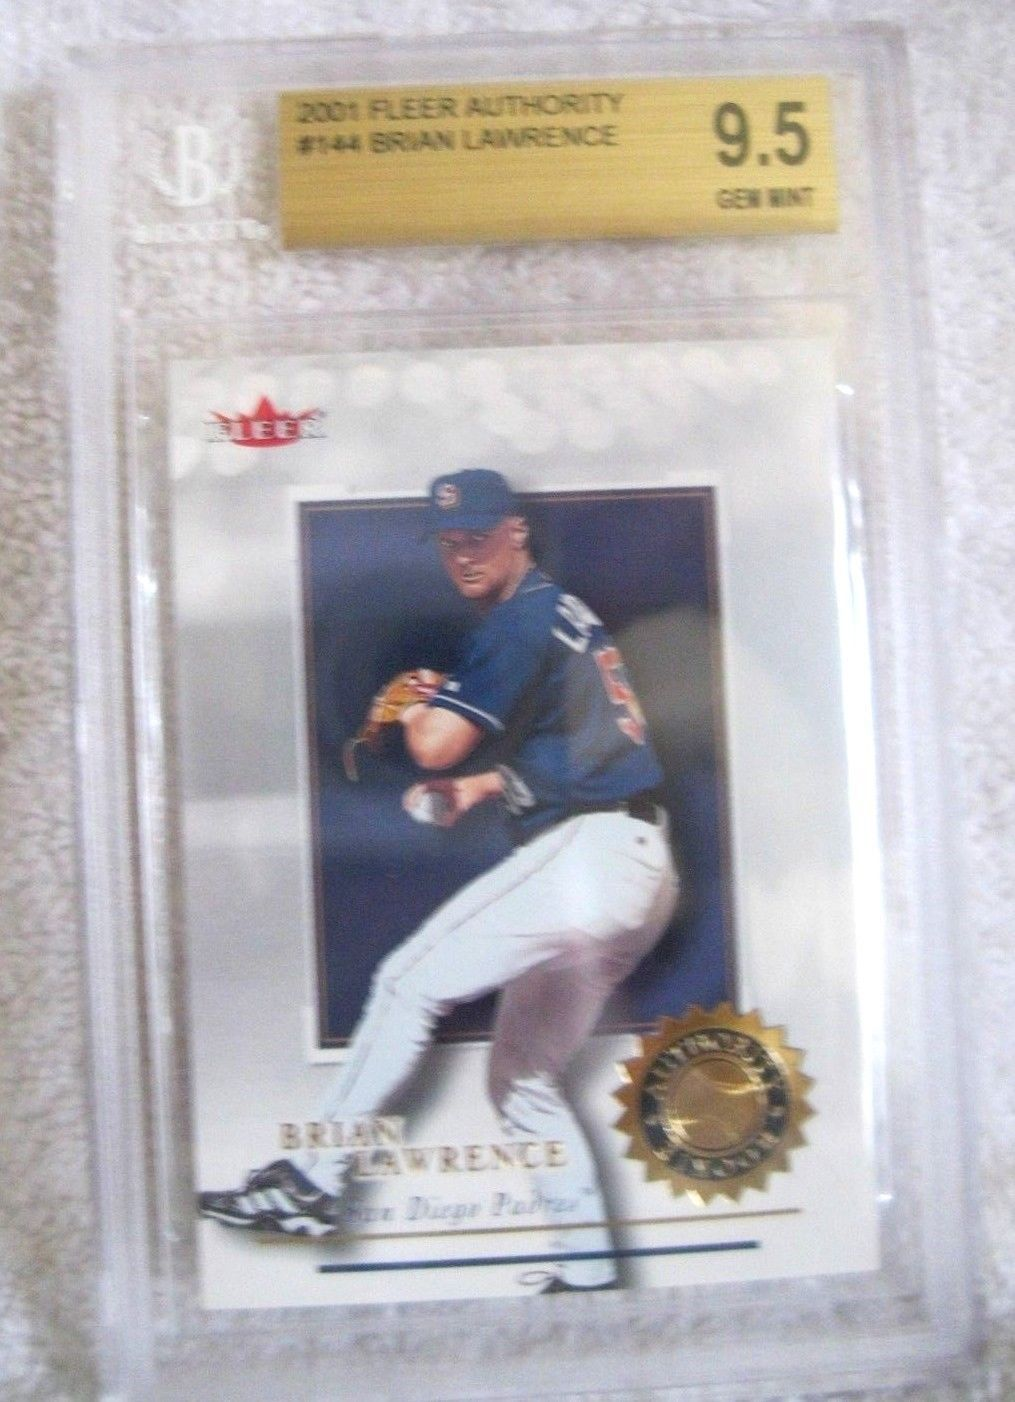 Brian Lawrence RC 2001 Fleer Rookie #598/2001 GRADED GEM MINT BGS 9.5-Padres RC